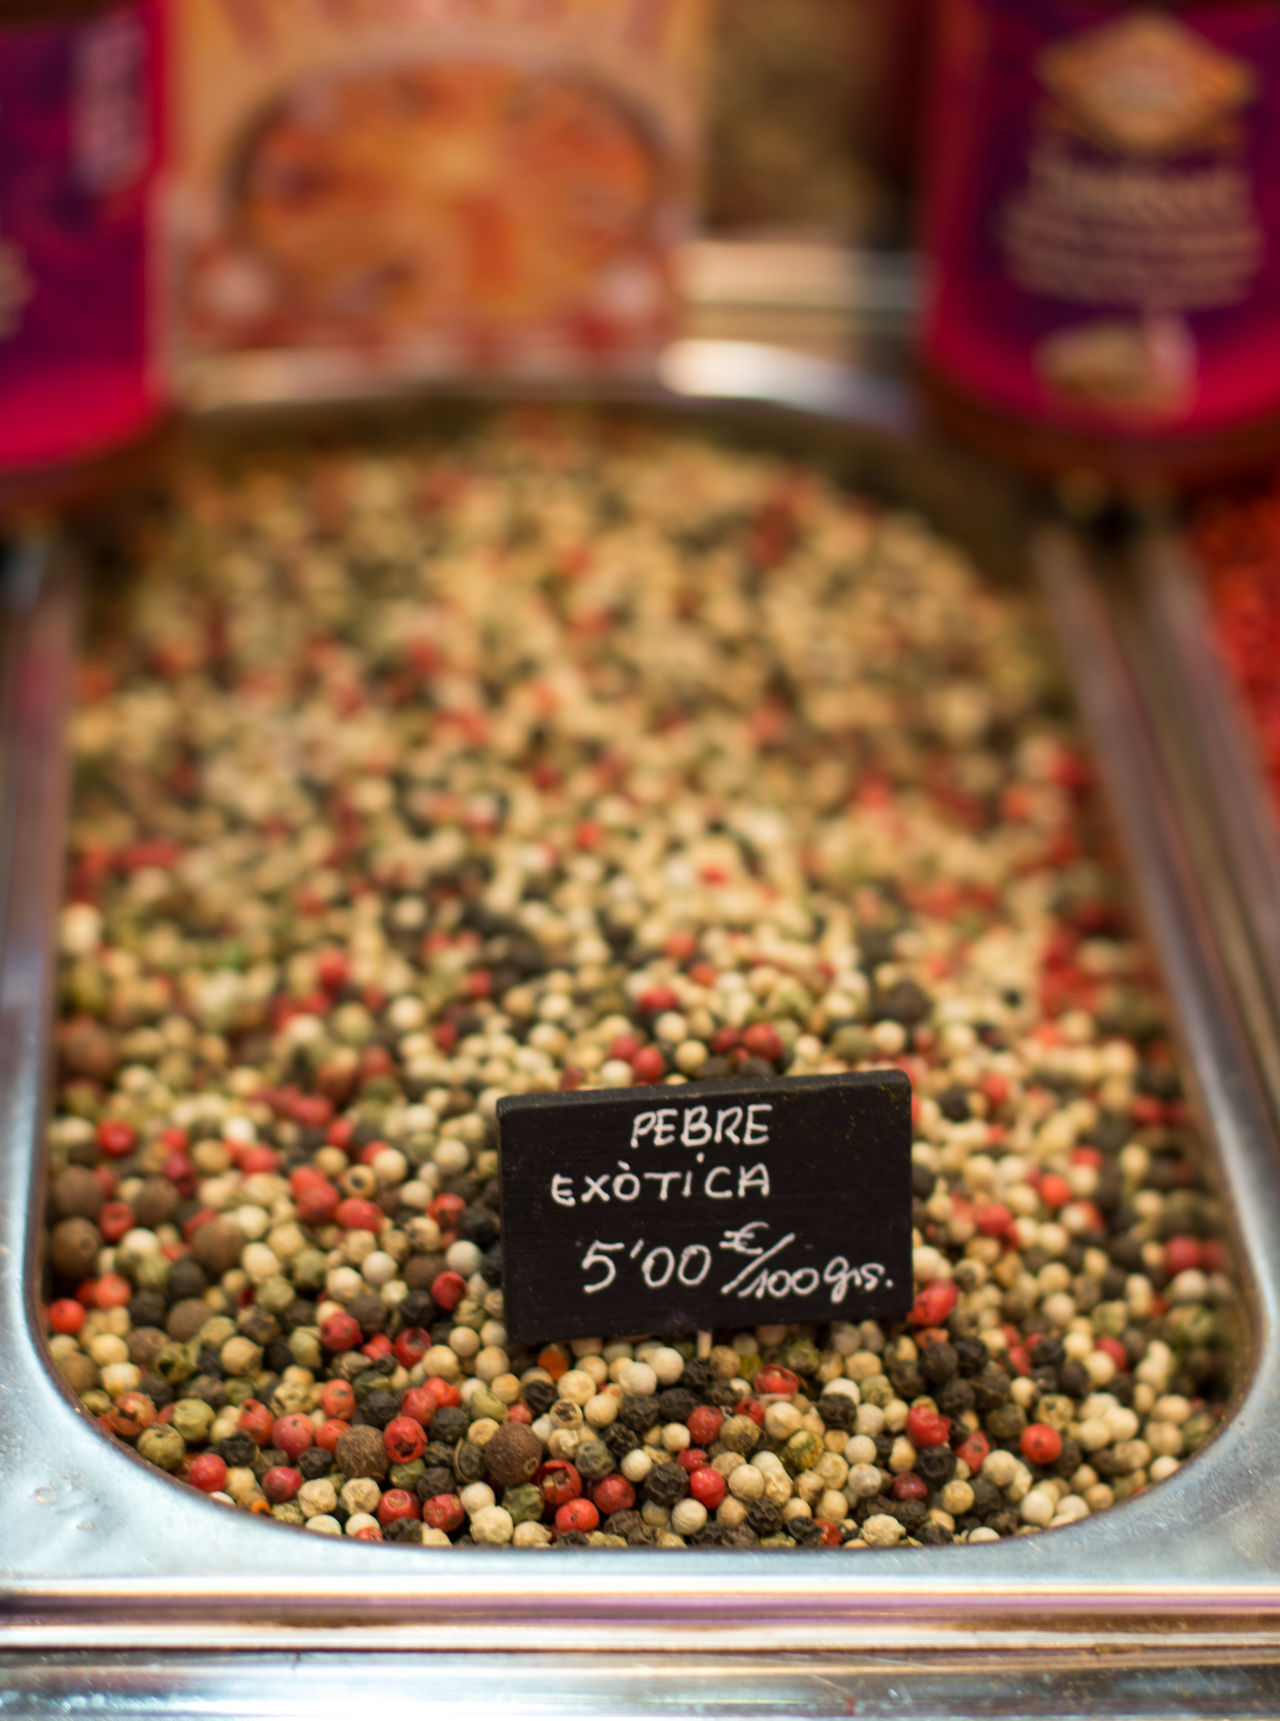 Pebre Exotica Poivre Peppercorns Mixed The Shop Around The Corner